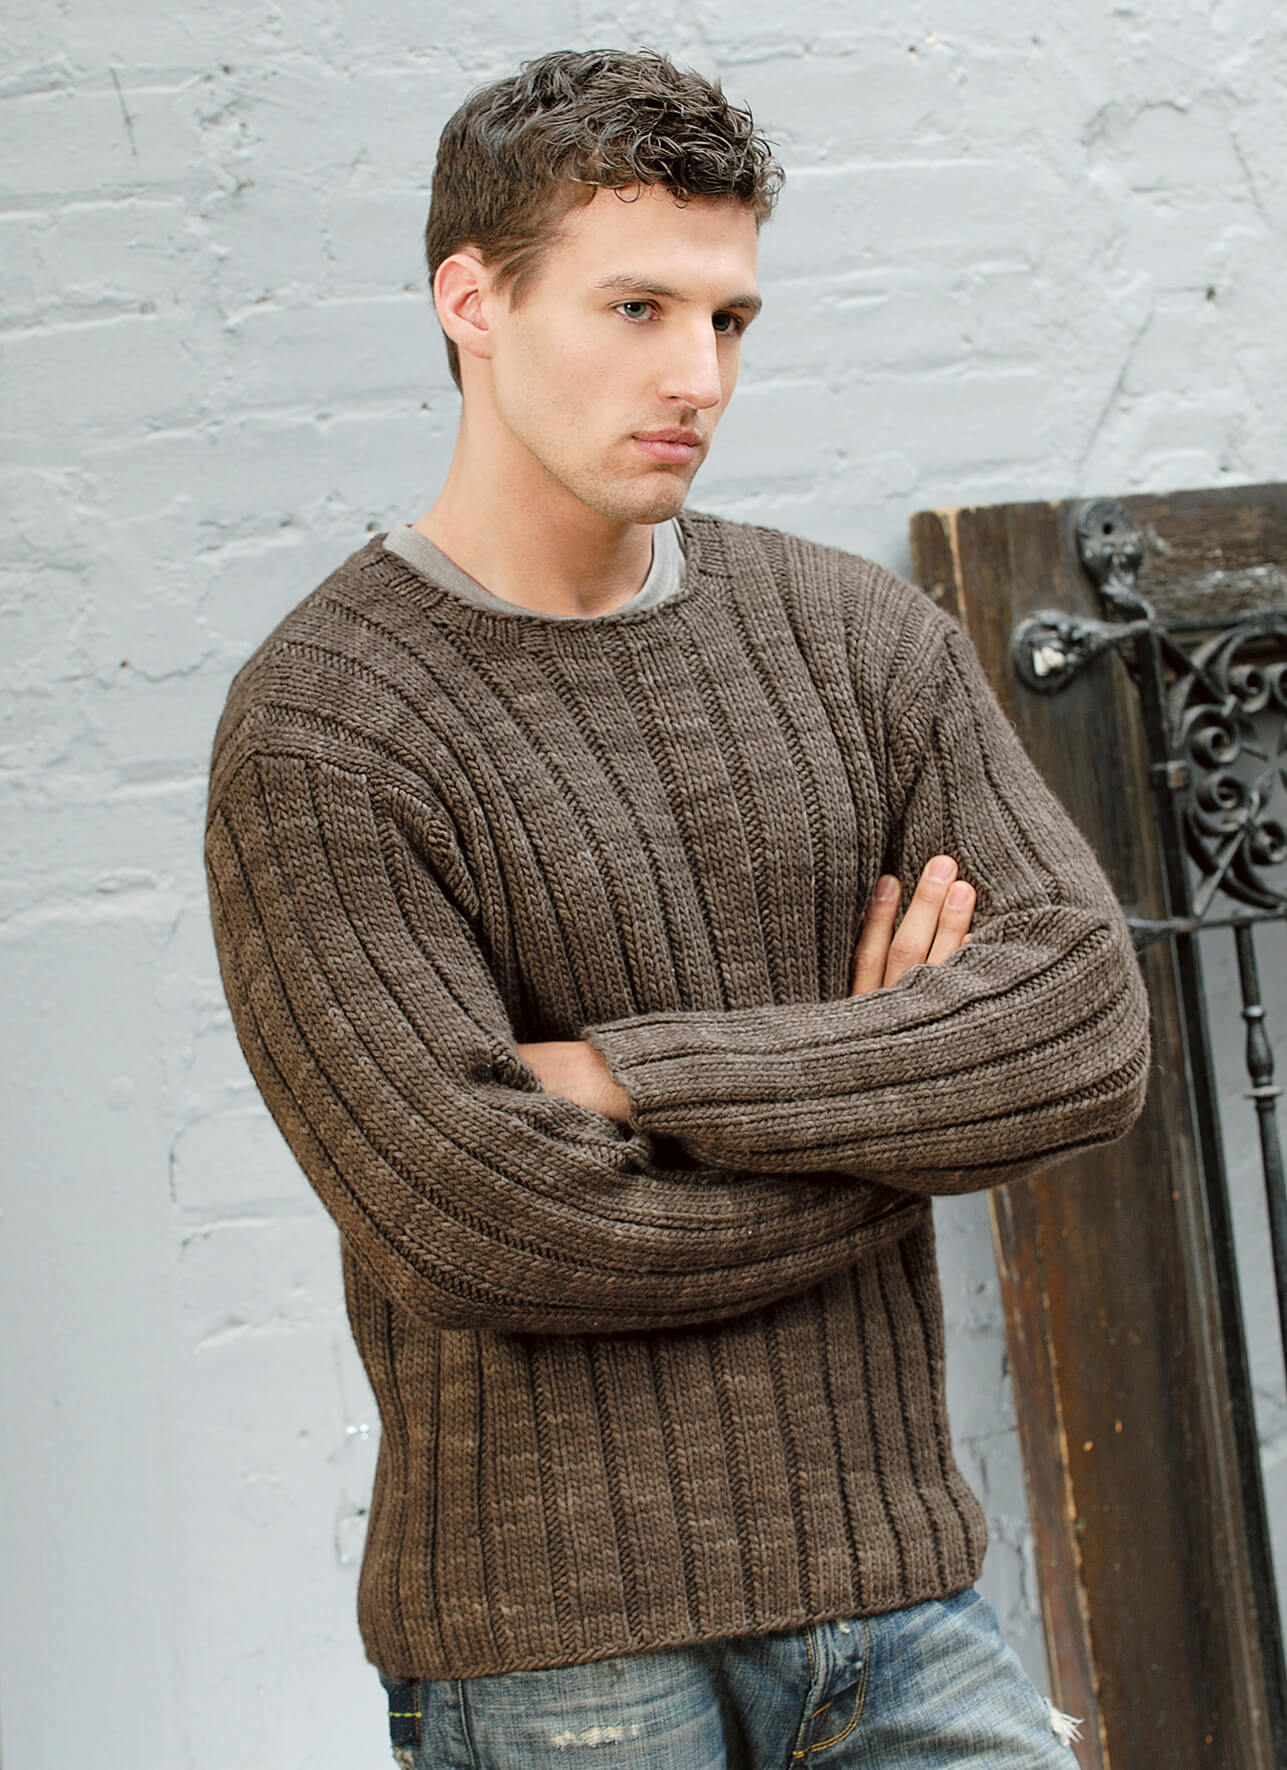 Men's Ribbed Sweater - Blue Sky Fibers